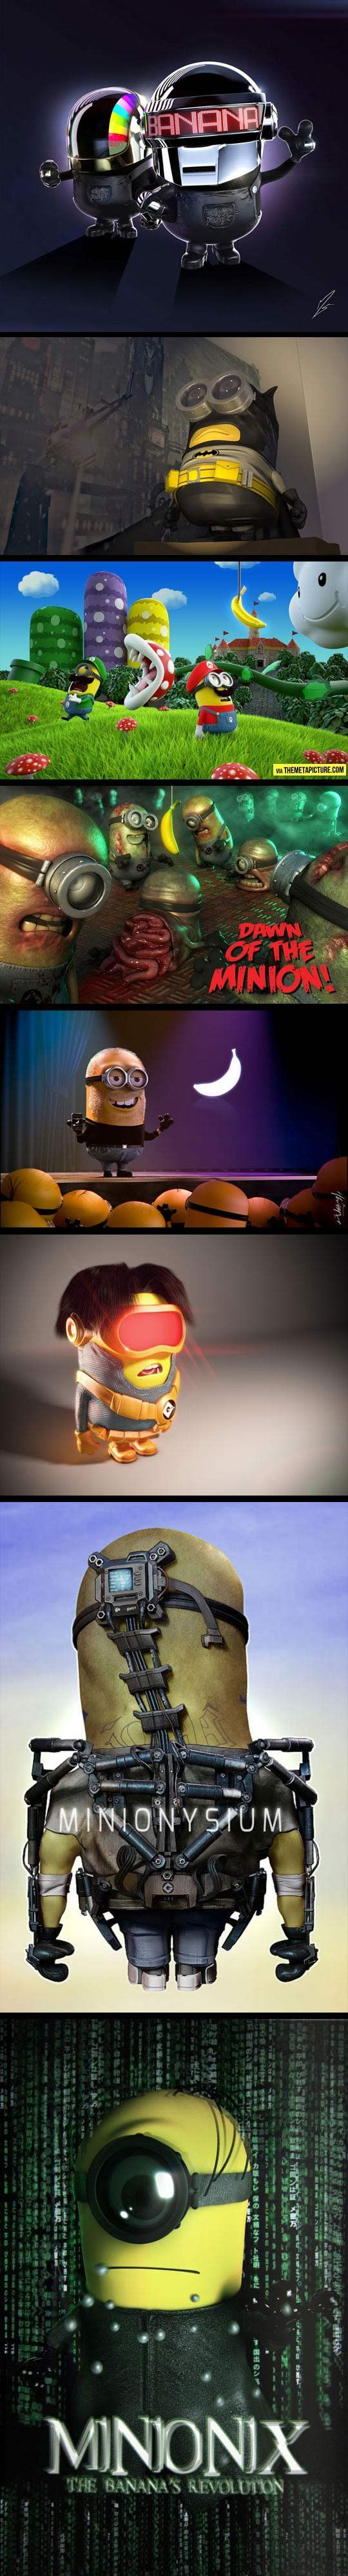 17 Best Ideas About Film Minion On Pinterest Minions Despicable